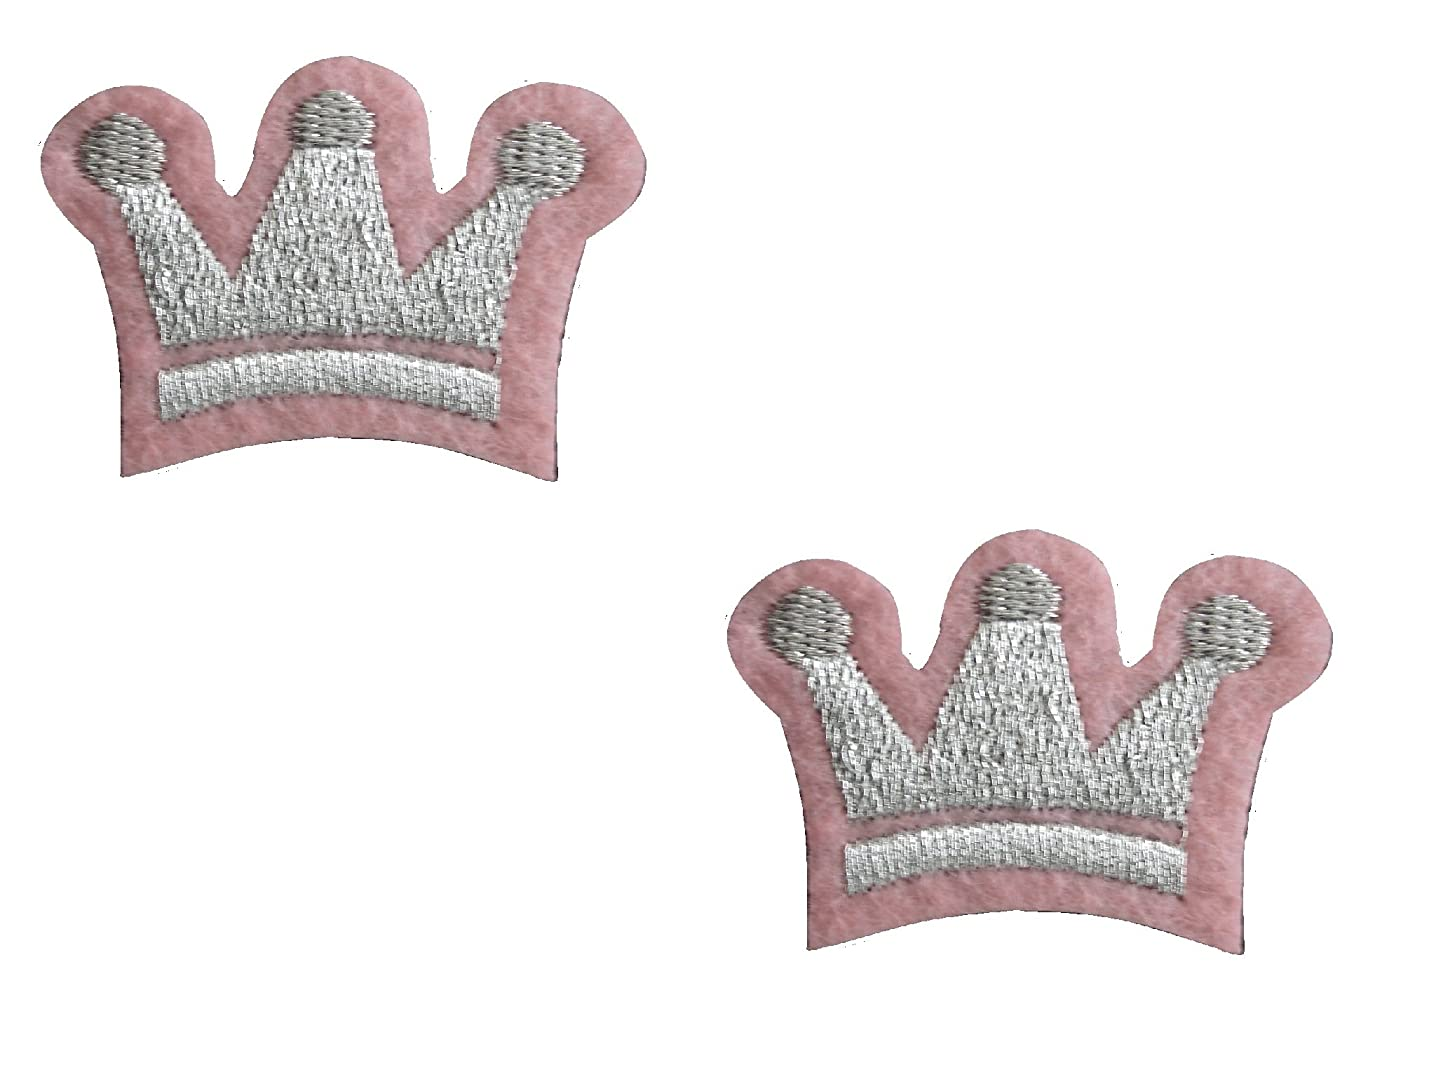 2 small pieces CROWN Iron On Patch Fabric Children Motif Applique Princess King Decal 1.6 x 1.2 inches (4 x 3 cm)